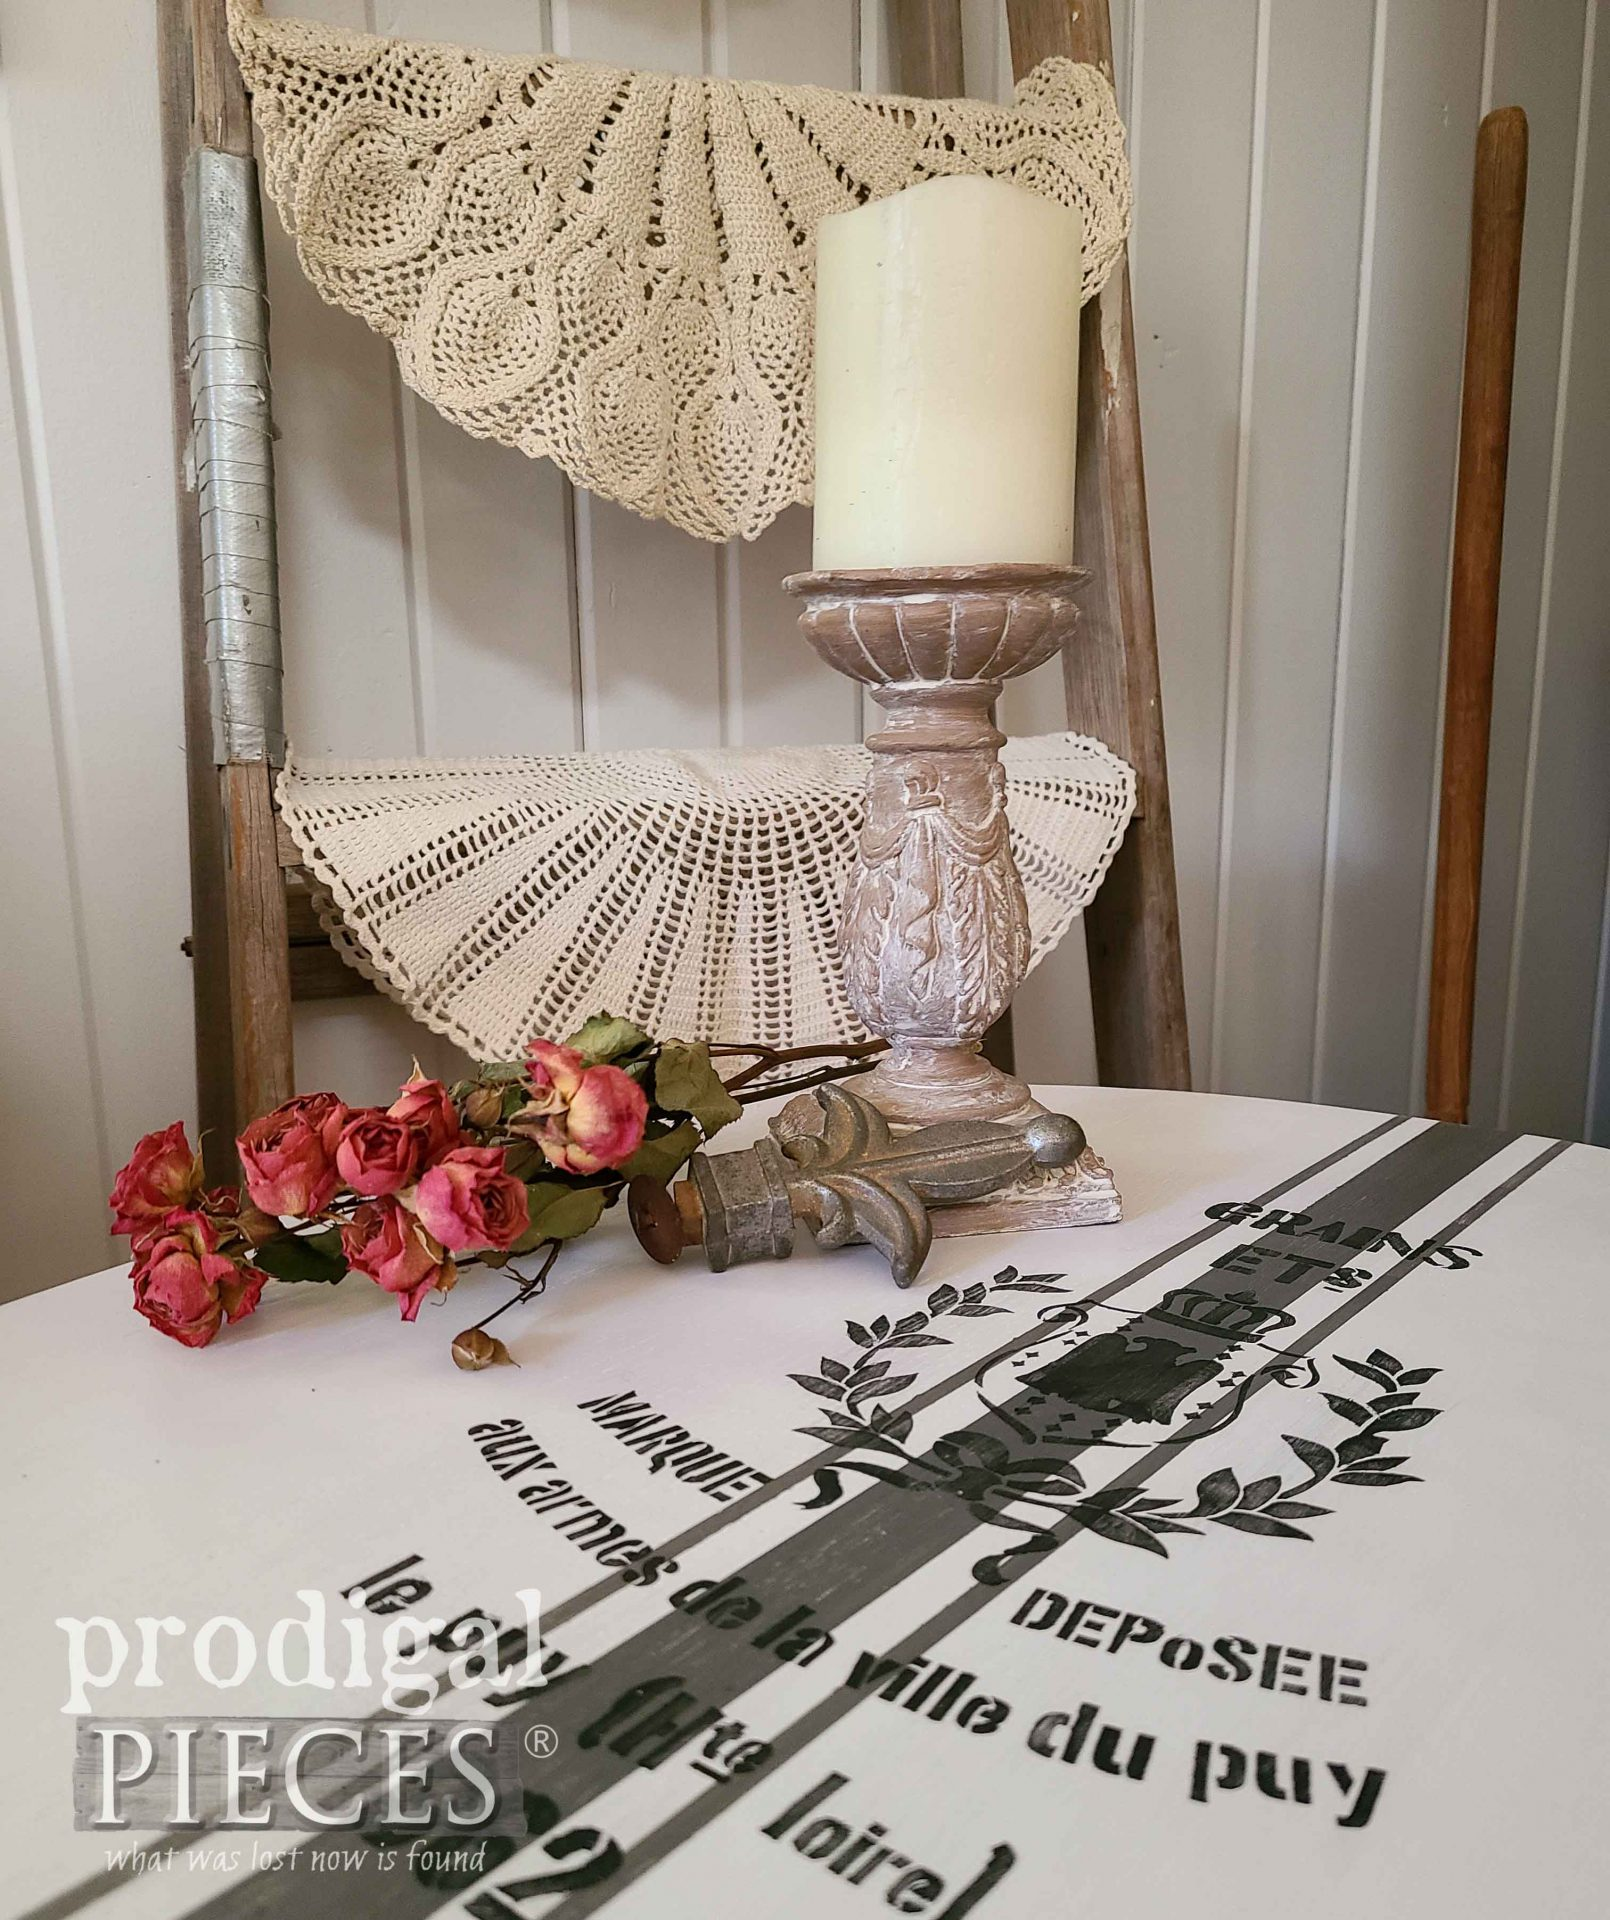 French Farmhouse Chic Table Top with Grain Sack by Larissa of Prodigal Pieces | prodigalpieces.com #prodigalpieces #furniture #home #homedecor